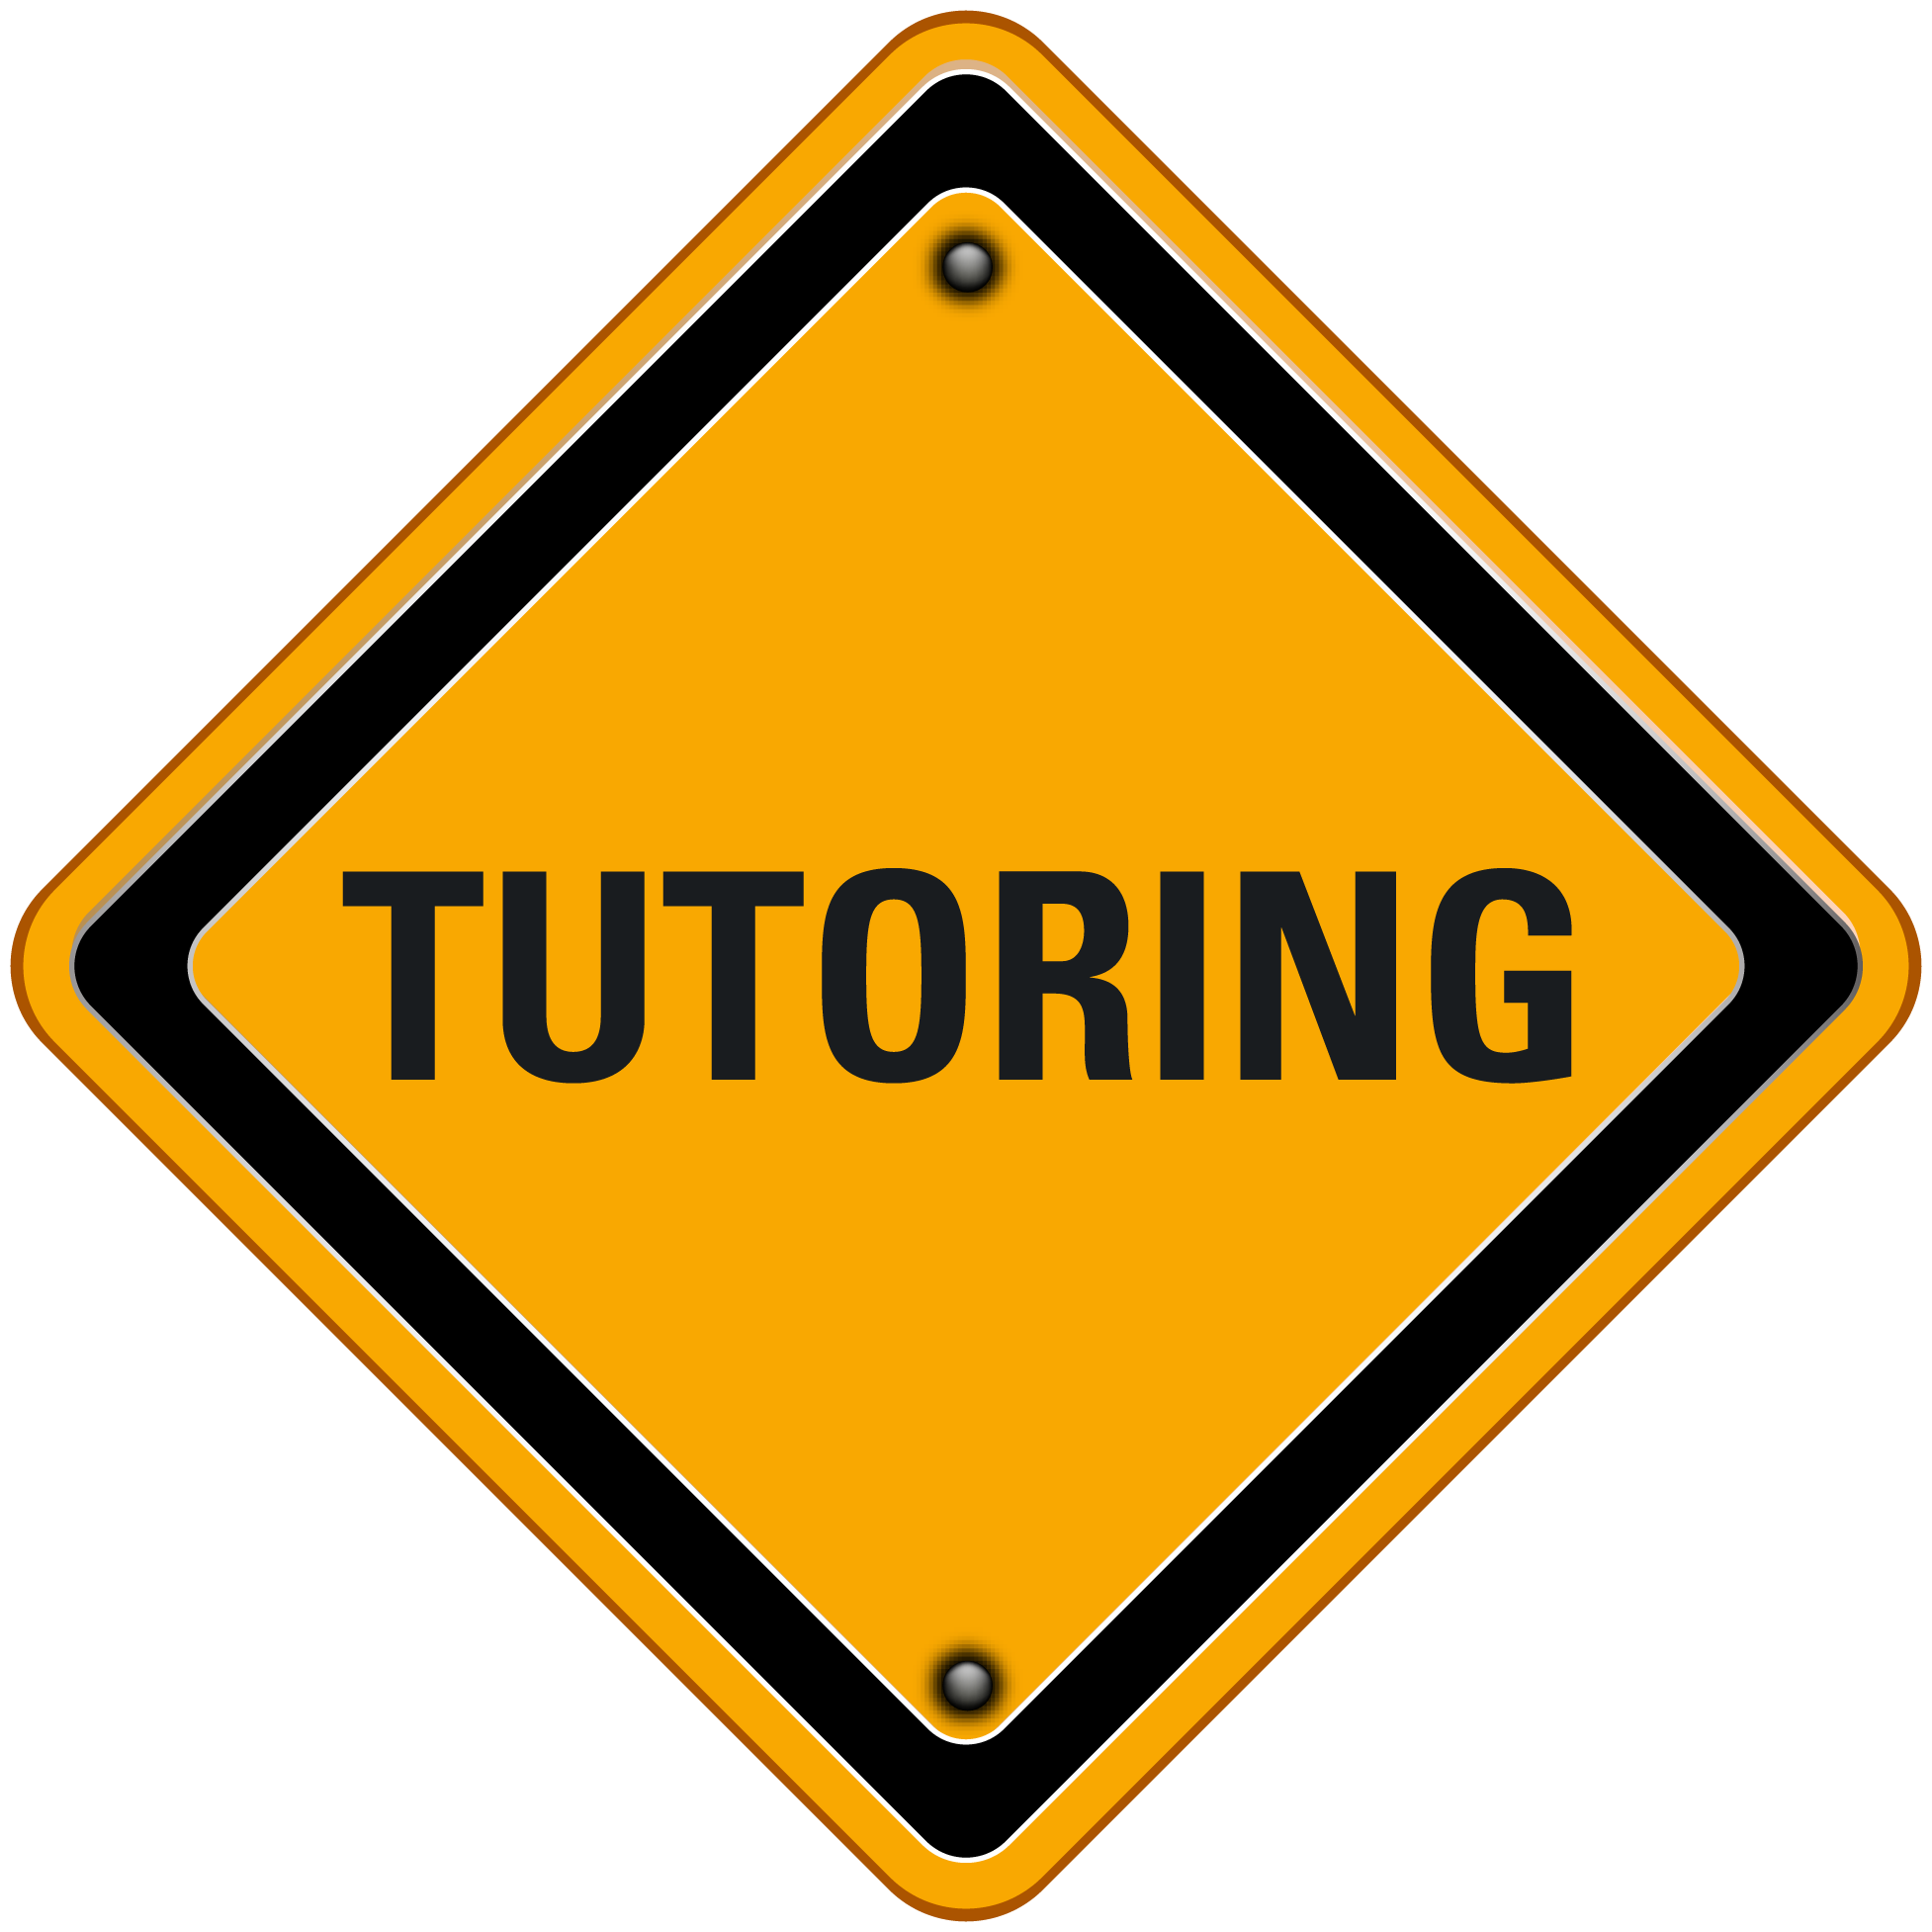 Image result for Tutoring